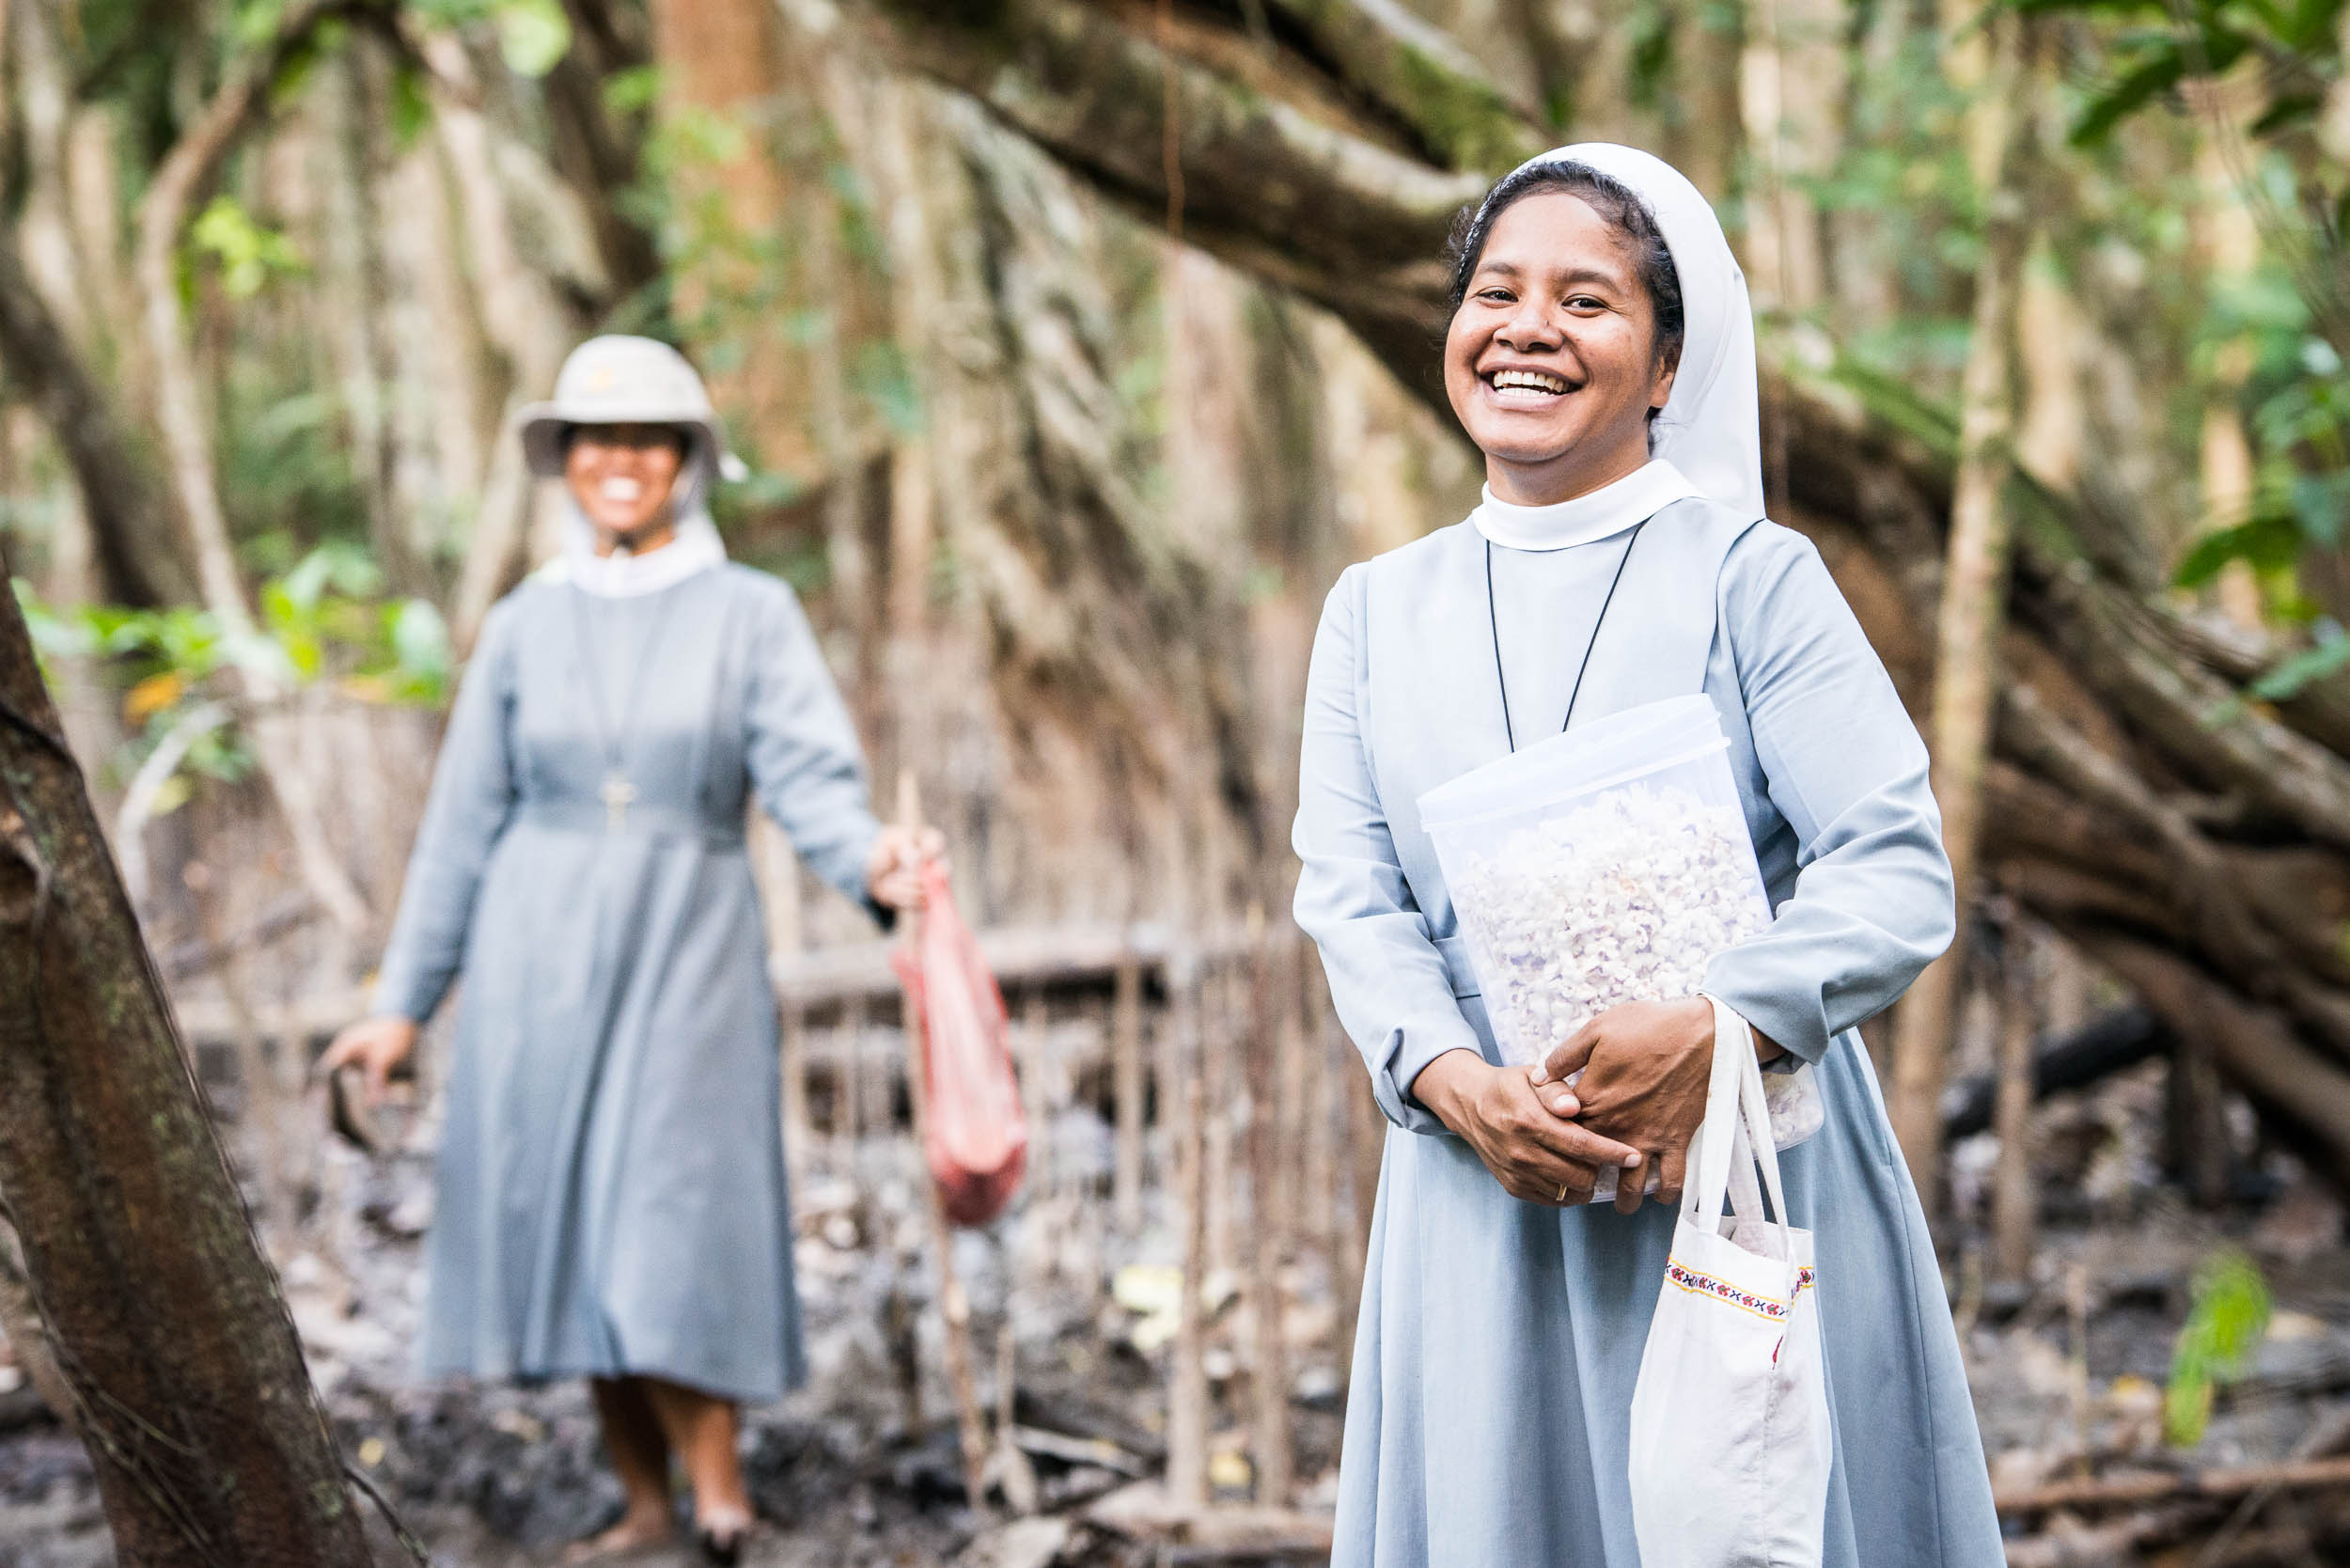 East Timor nuns laughing - Travel - Photo credit Nicola Bailey.jpg